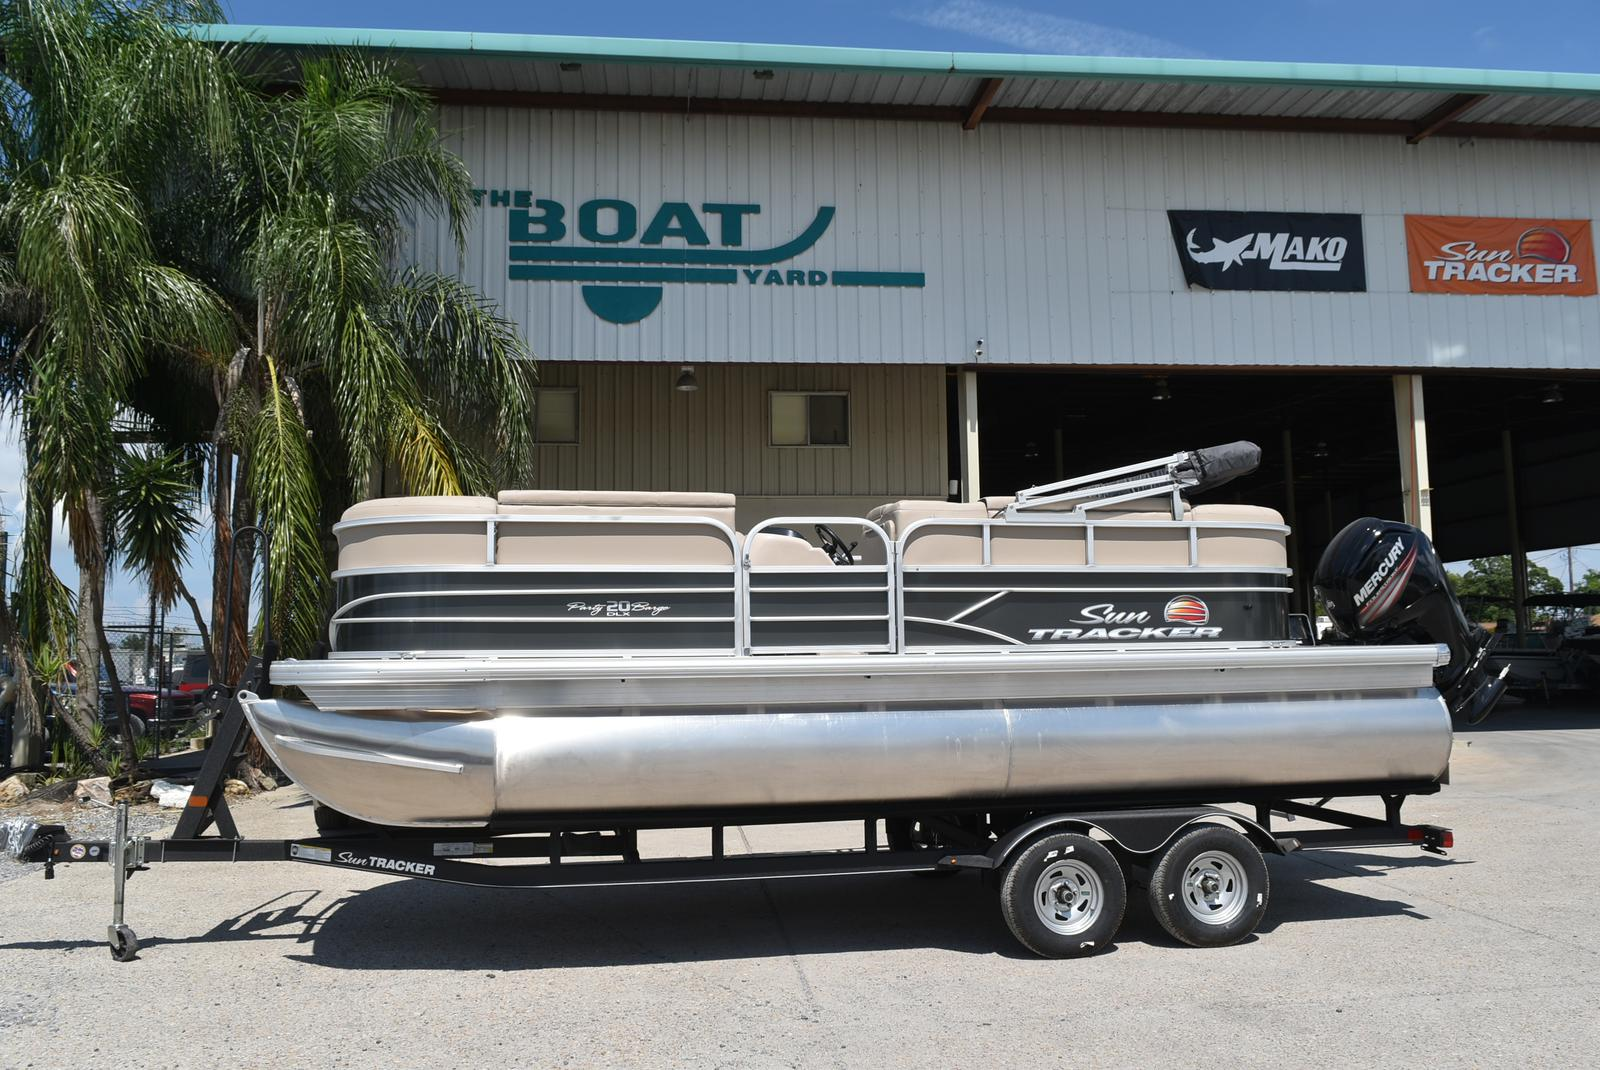 Inventory from Sun Tracker and Swamp Shark The Boat Yard Inc